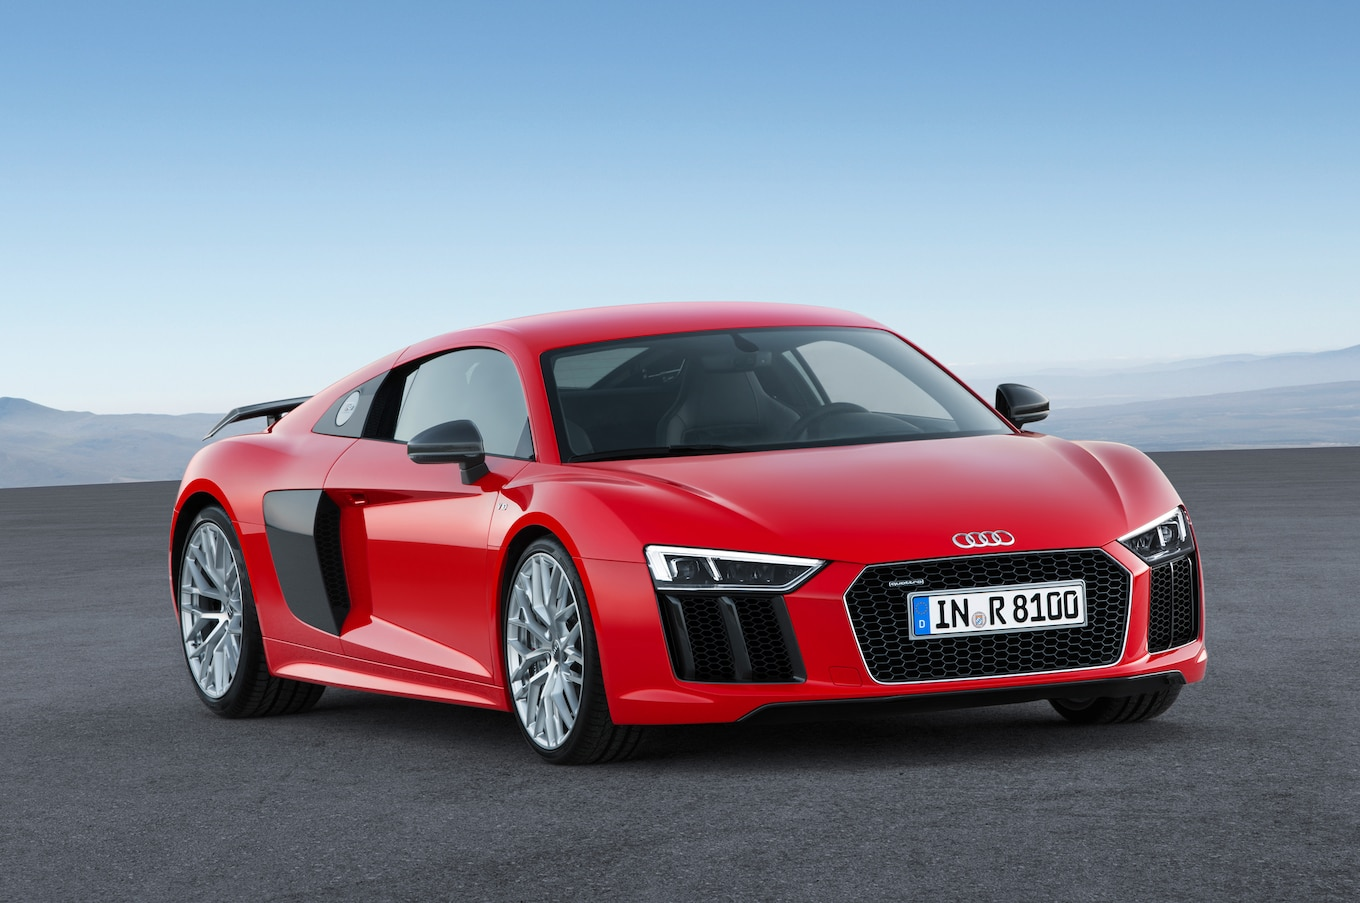 Audi R8 Cars Wallpapers Hd 2017 Audi R8 Reviews And Rating Motor Trend